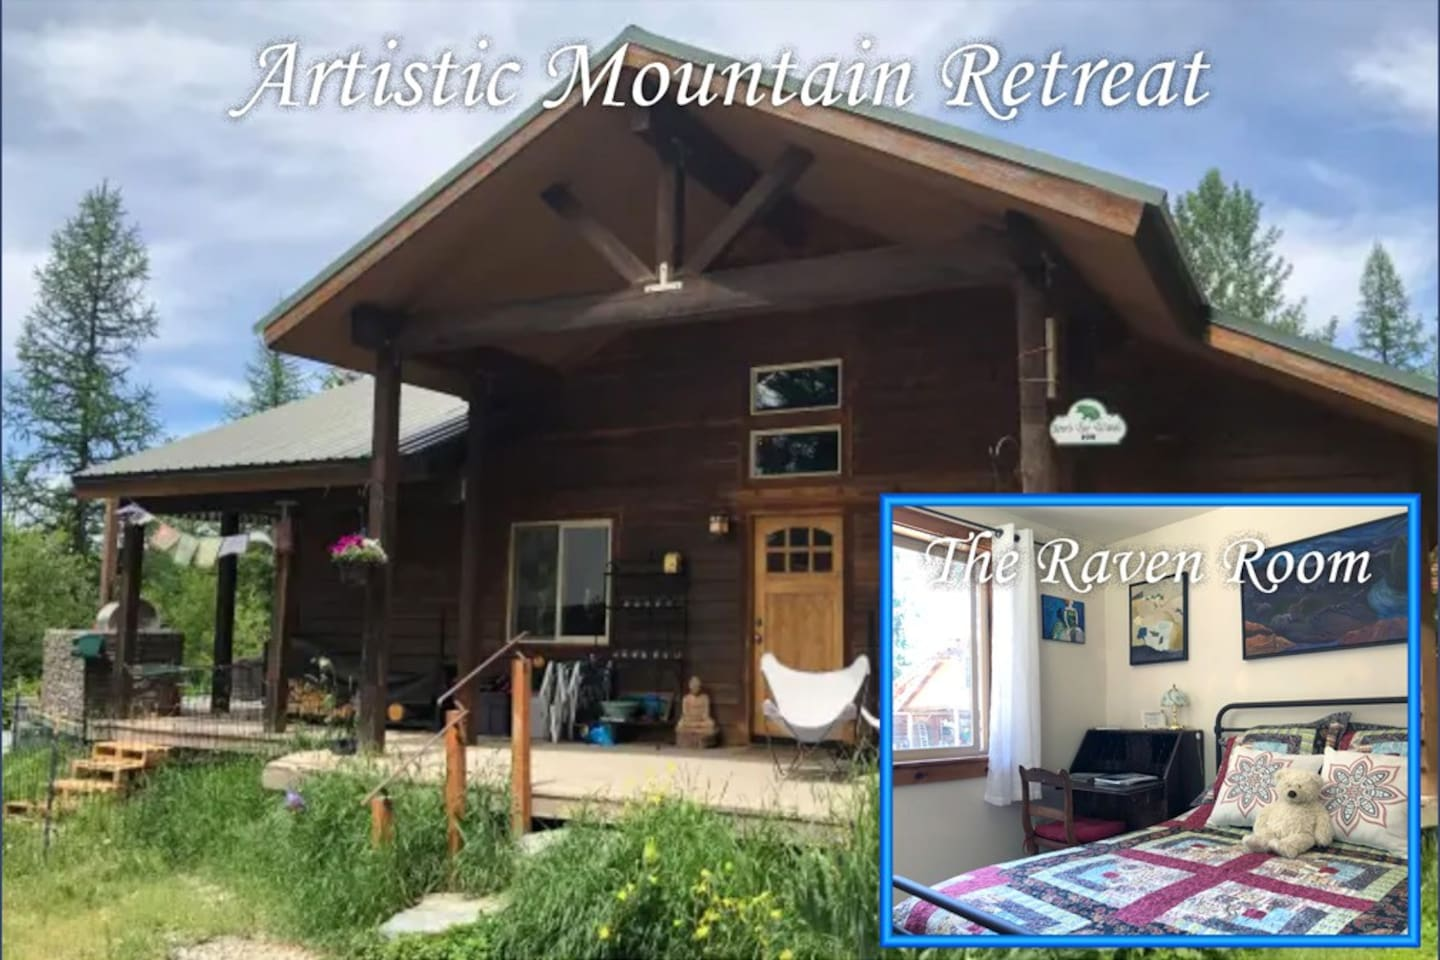 Welcome to the Raven Room, a private bedroom in the main house of the Artistic Mountain Retreat. A place for you to call home while you enjoy all of the amenities of our house and grounds.